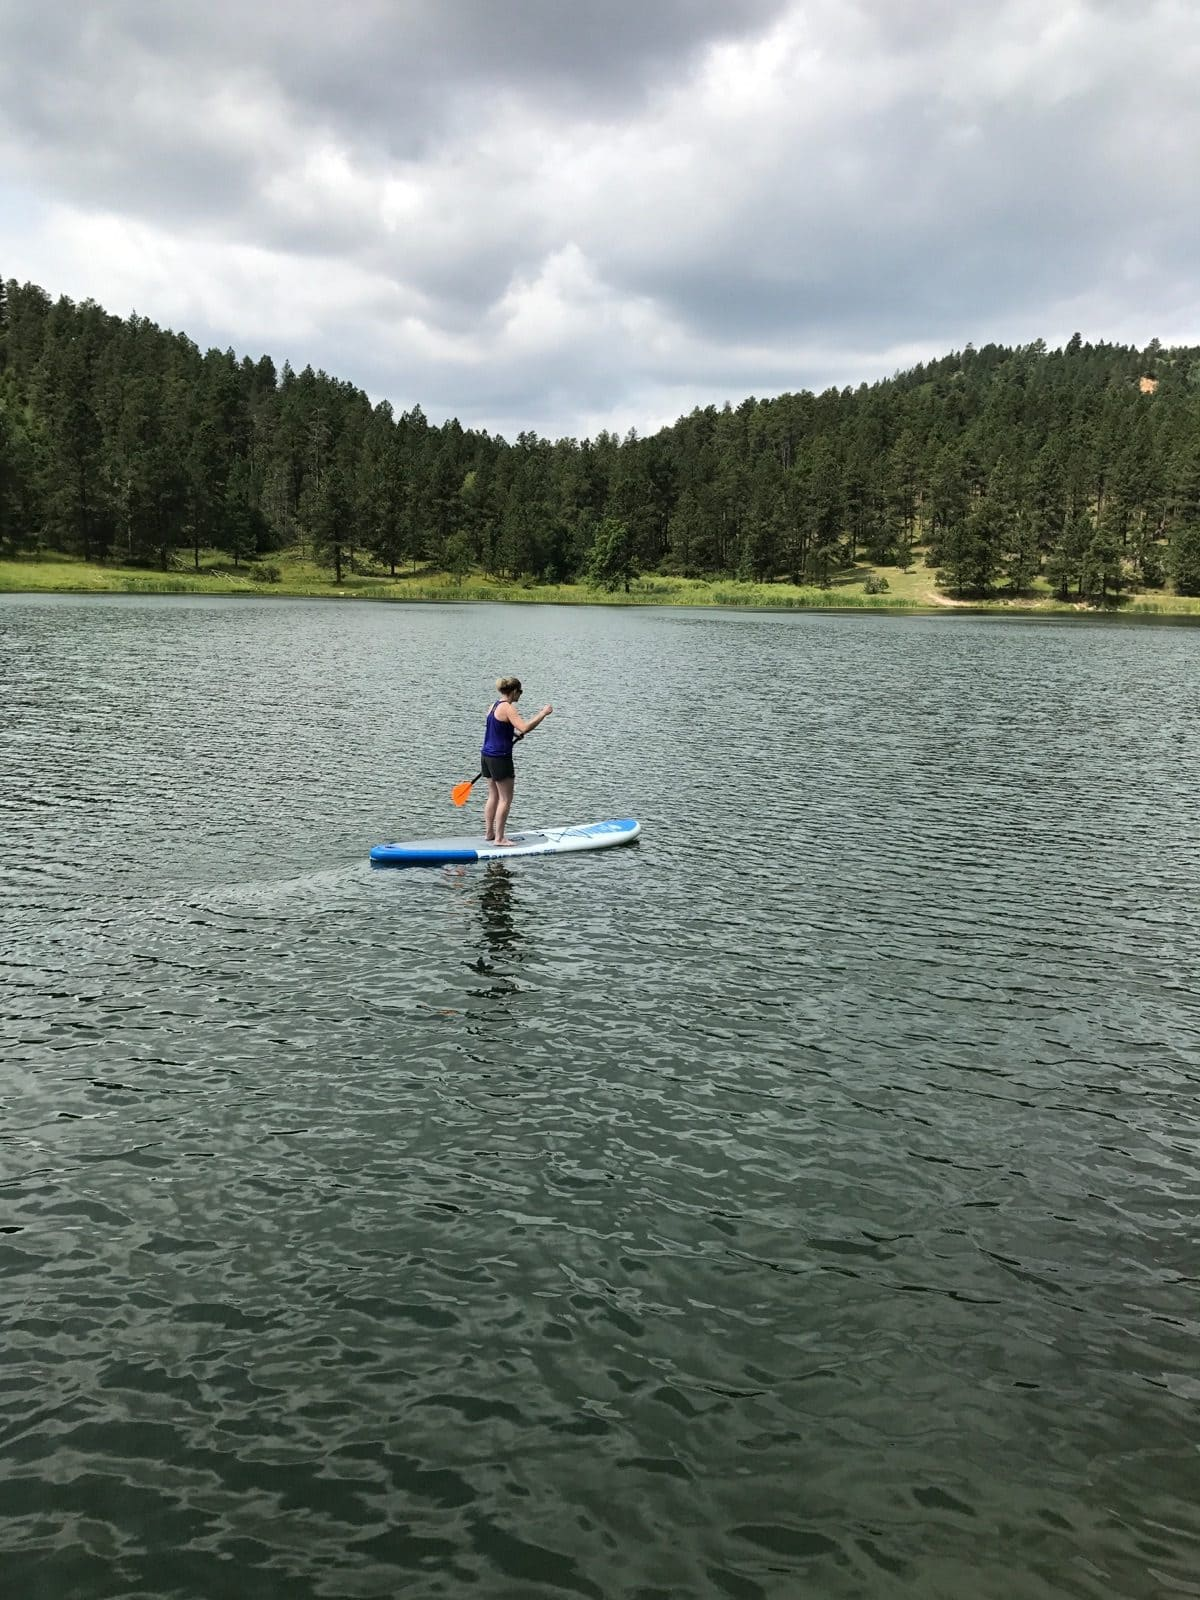 me paddle boarding on a small lake